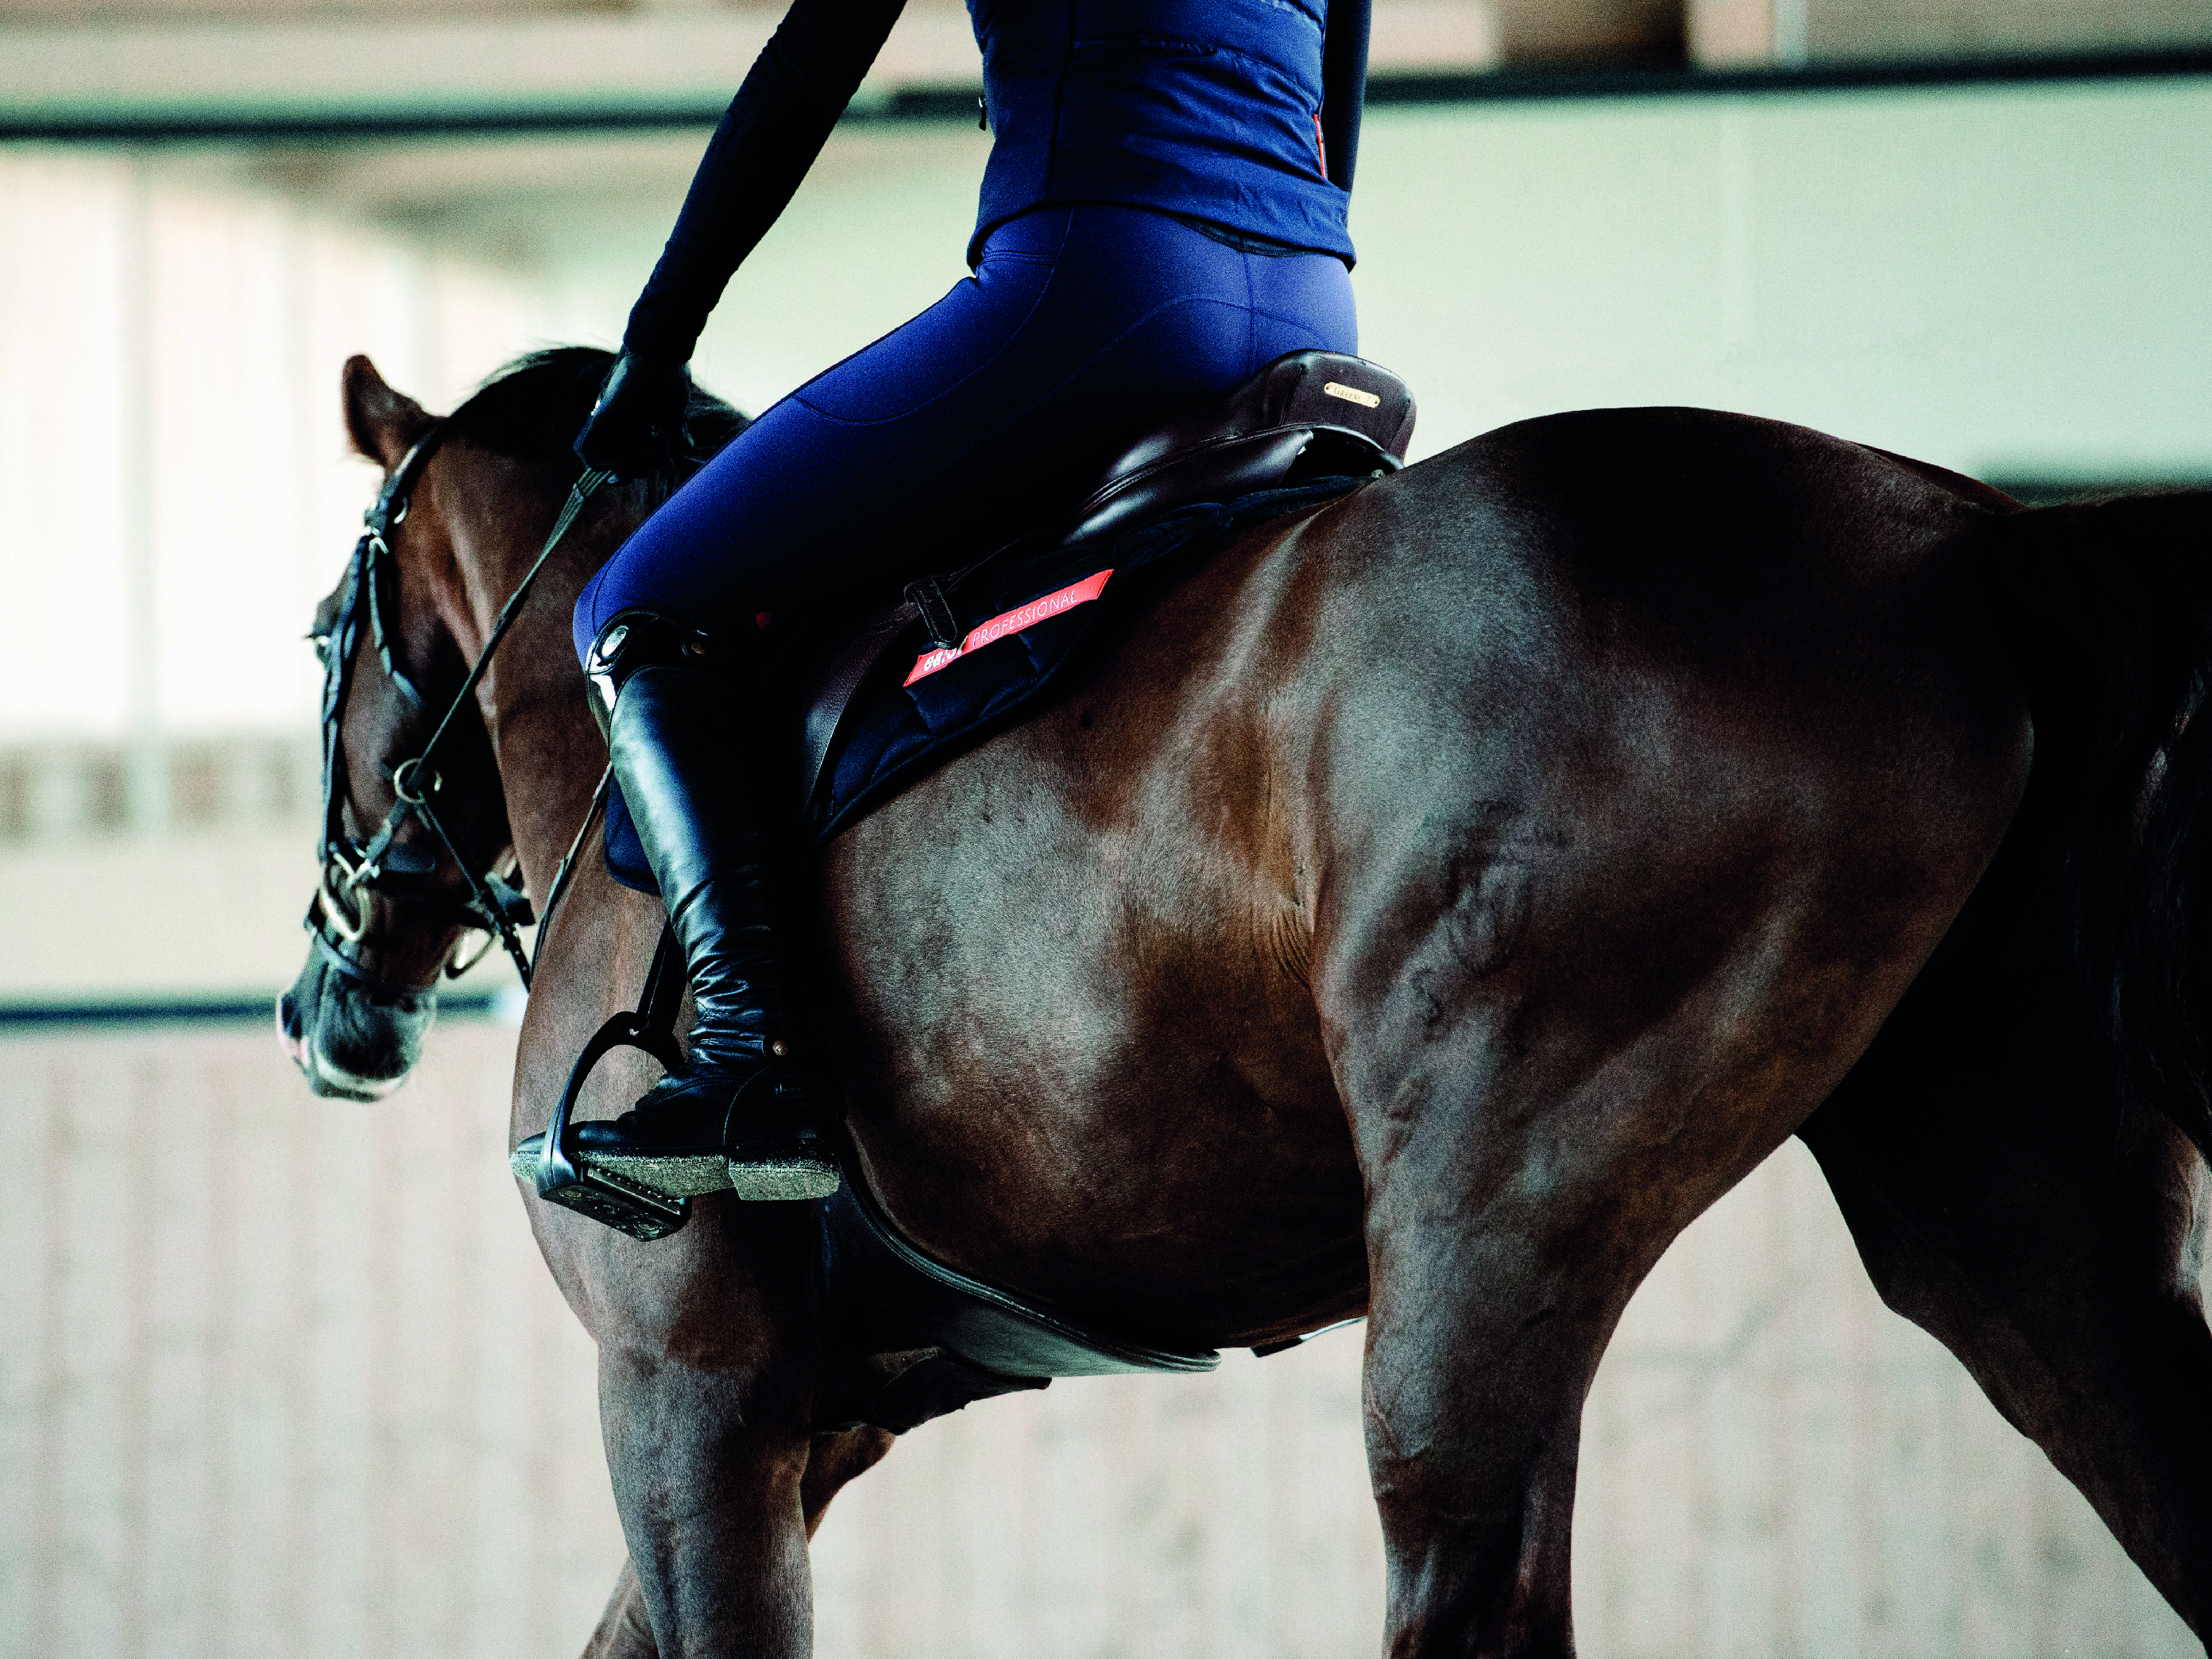 Trend alert for all riders: The new breathable winter edition of the riding leggings!